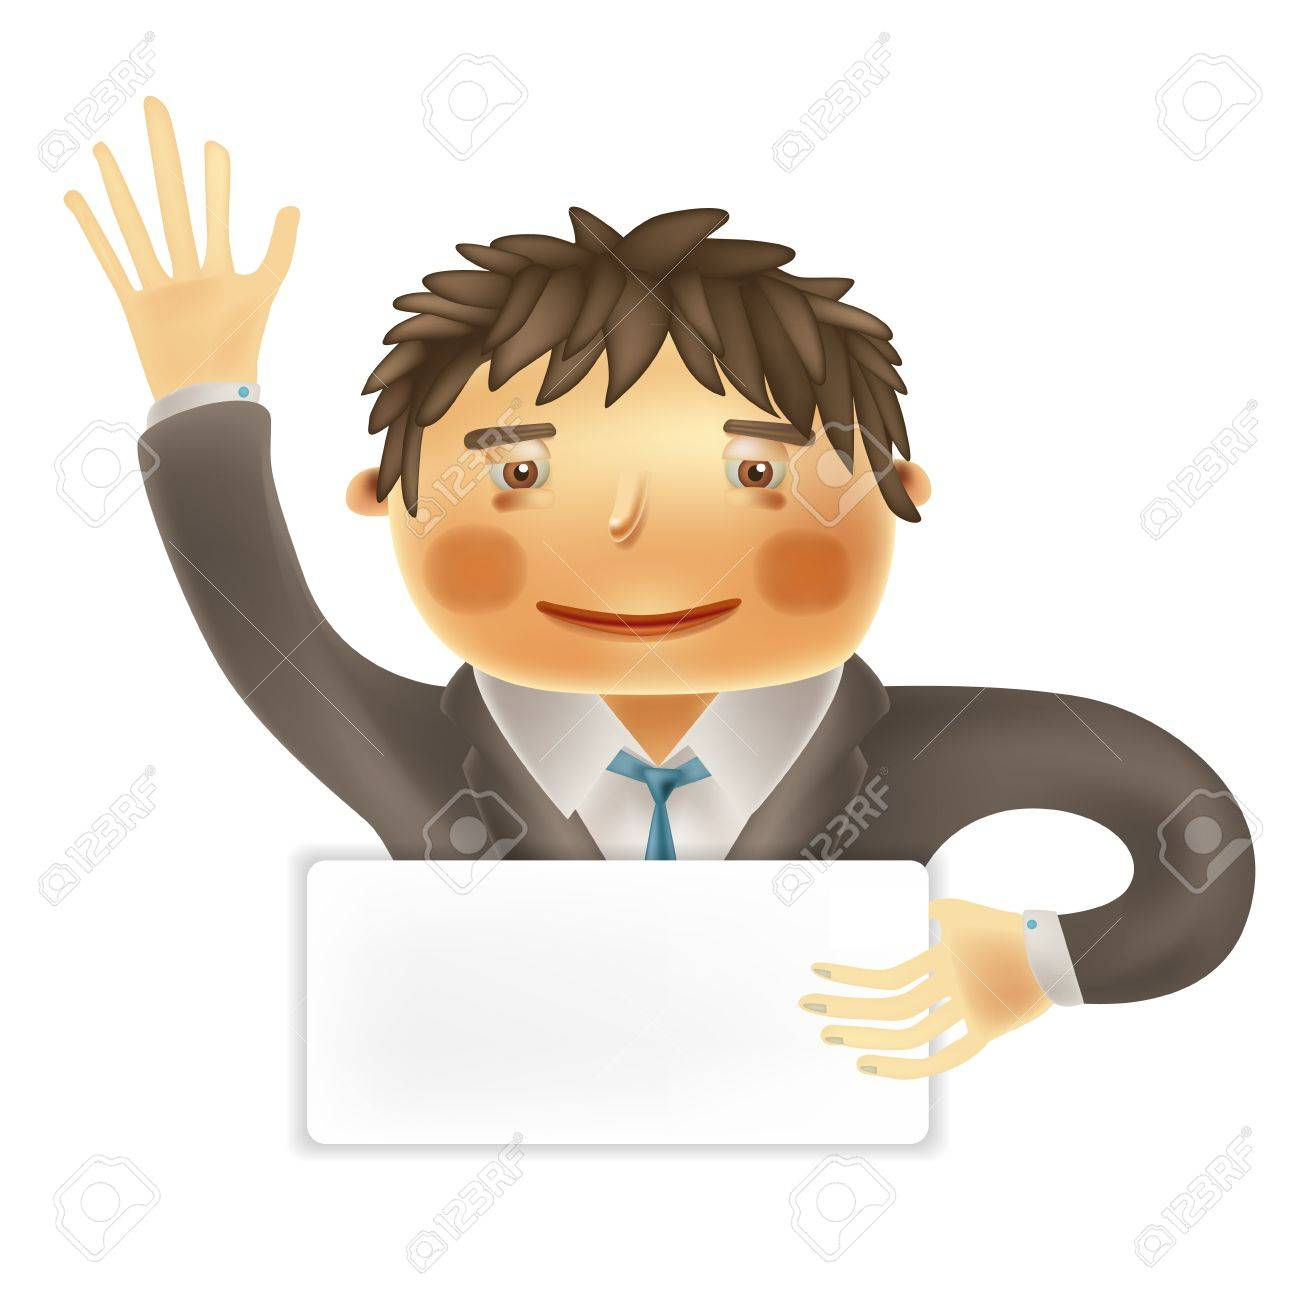 Funny cartoon office worker for use in presentations, etc Stock Vector - 16711668